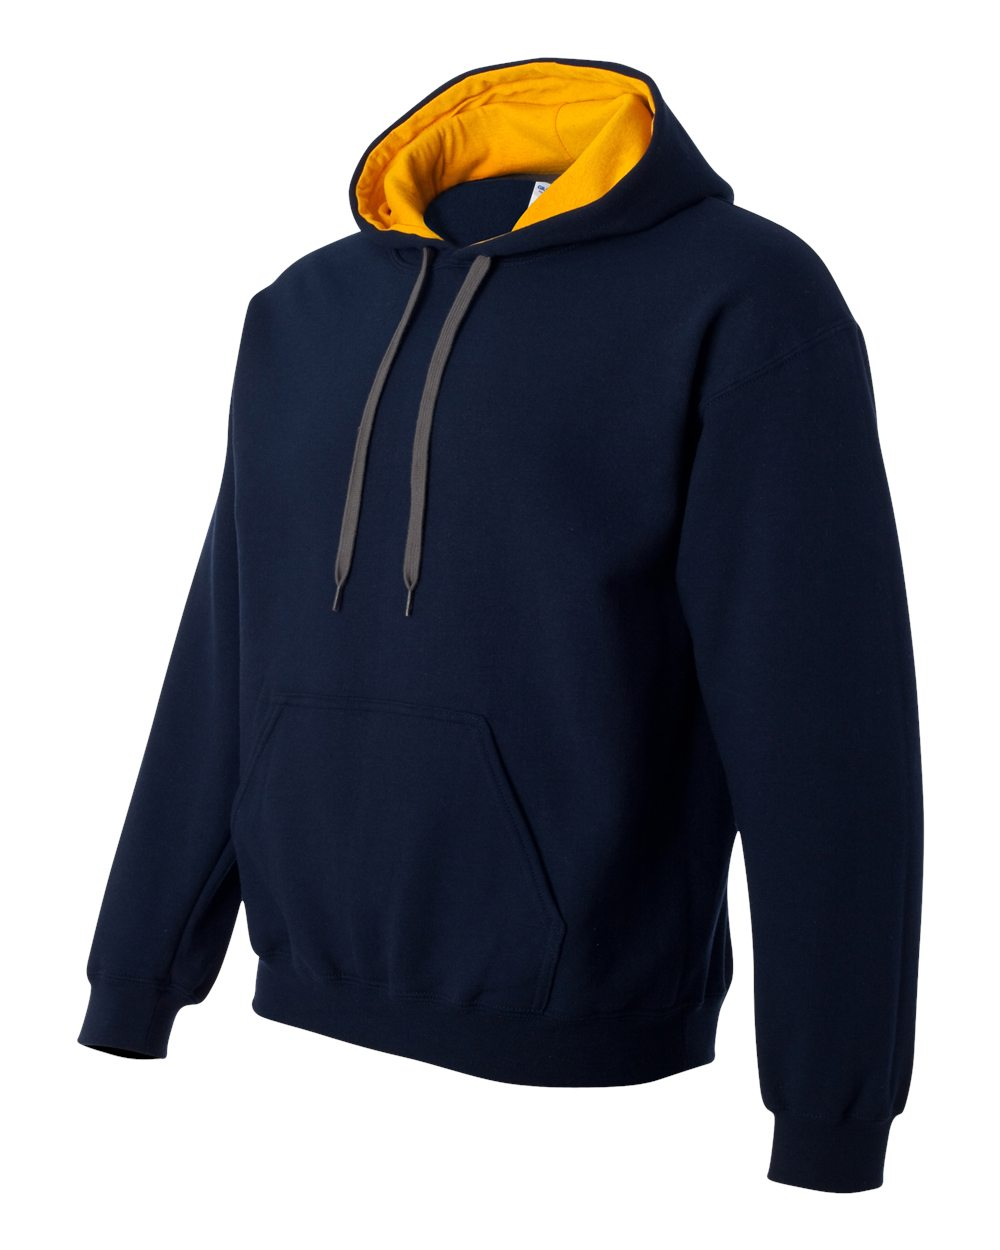 Gildan Heavy Blend Contrasted Hoodie GI185C00 Navy - Gold